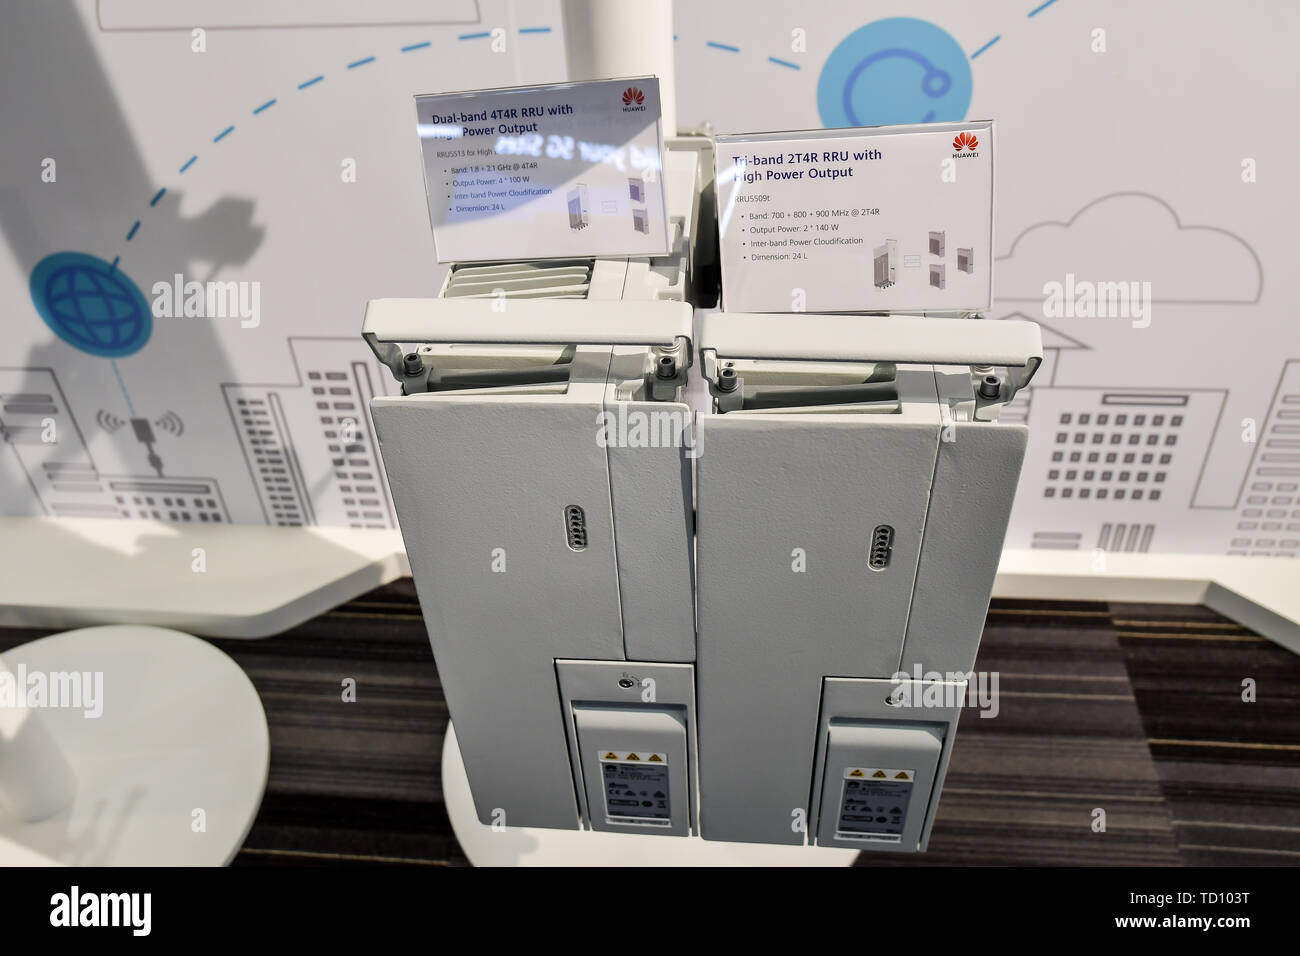 Power Output Stock Photos & Power Output Stock Images - Alamy